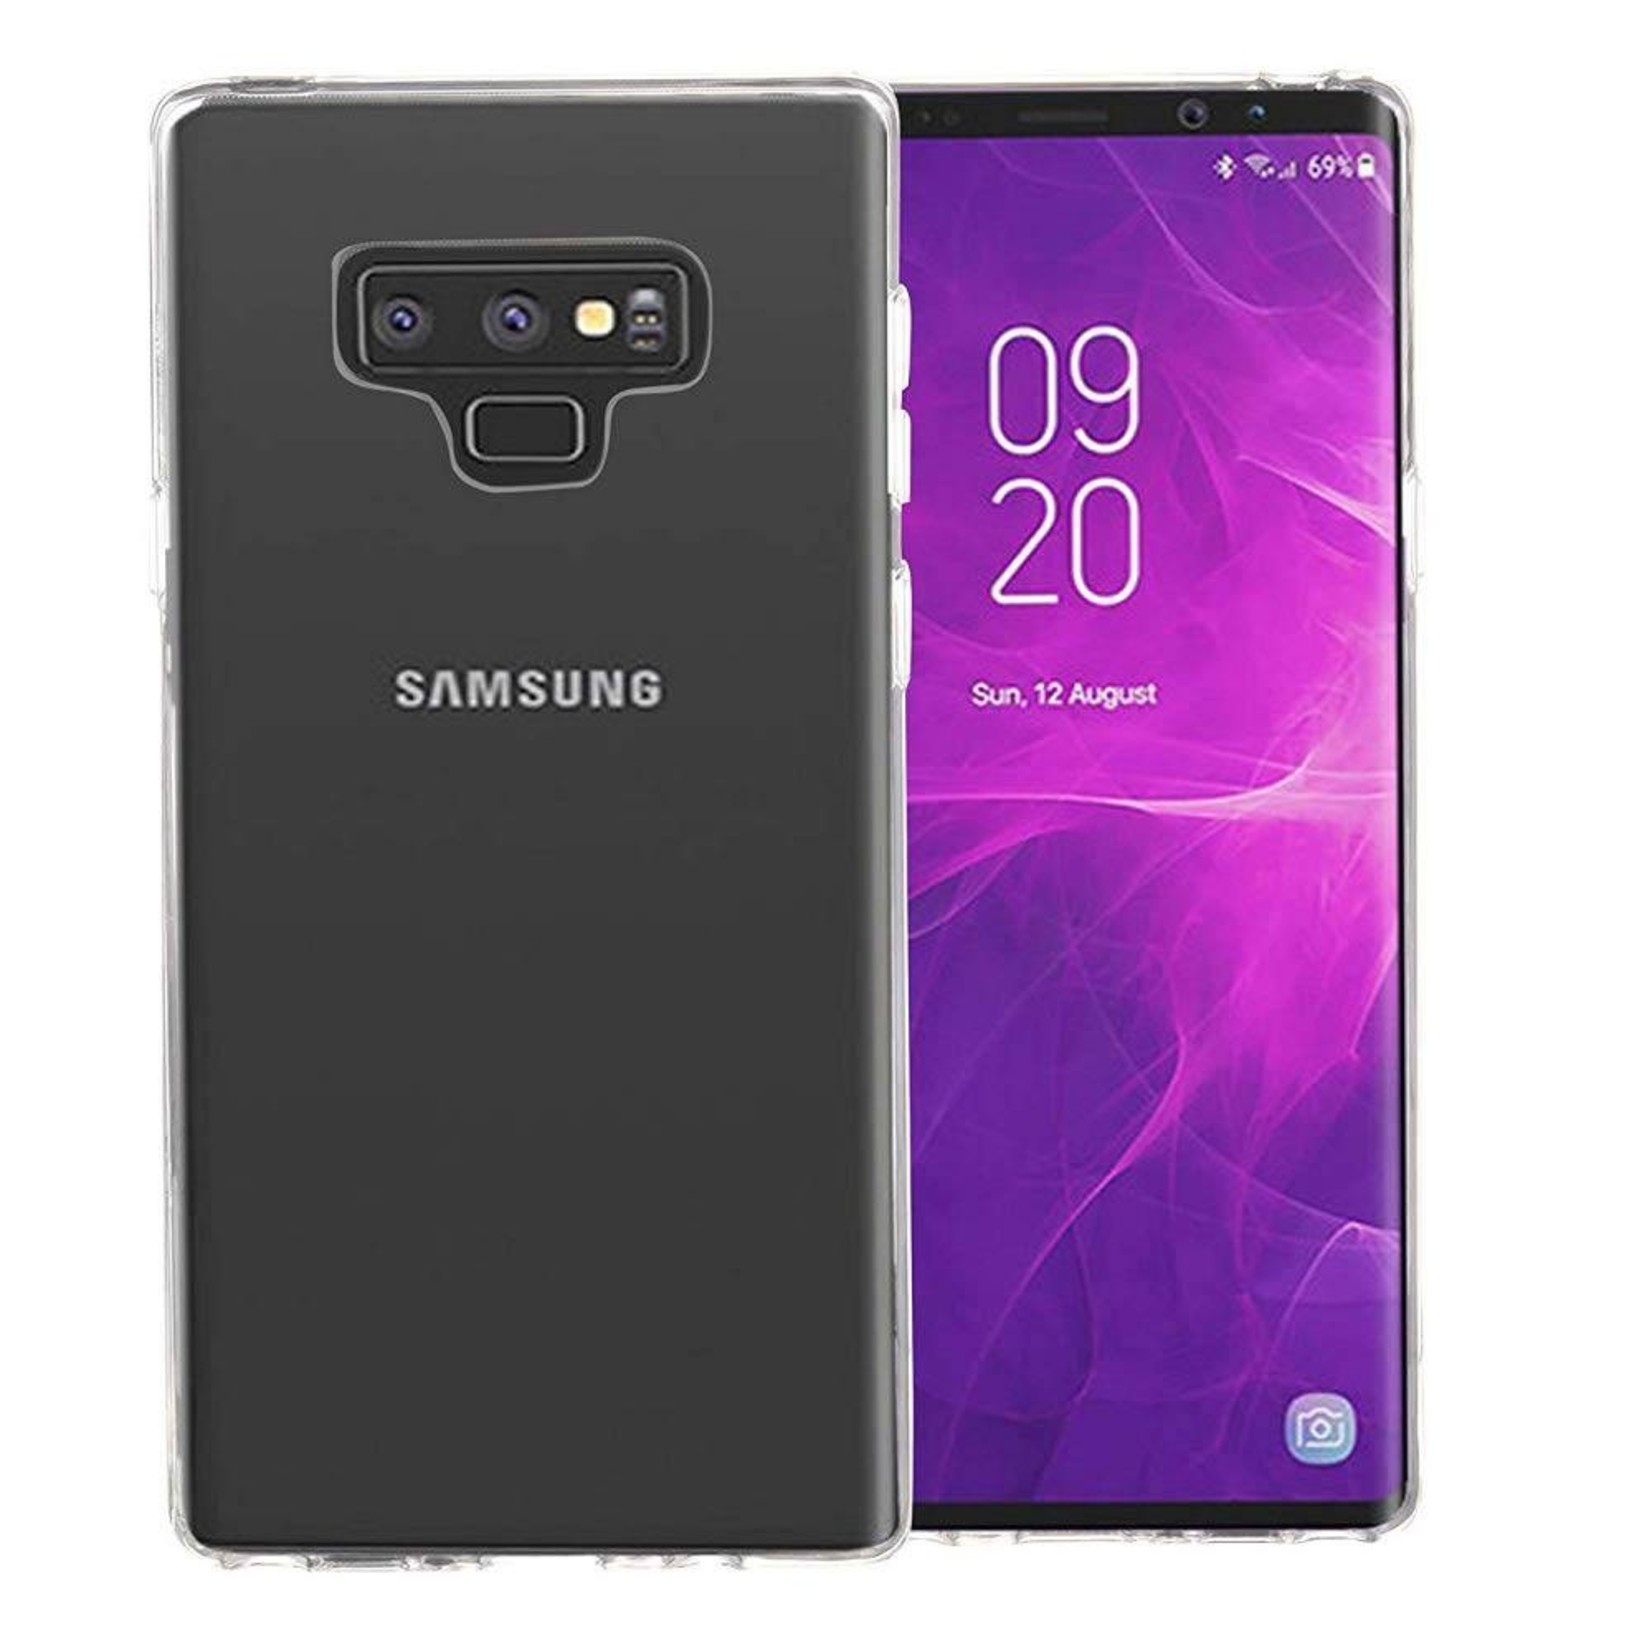 Colorfone Hoesje CoolSkin3T voor Samsung Galaxy Note 9 Tr. Wit